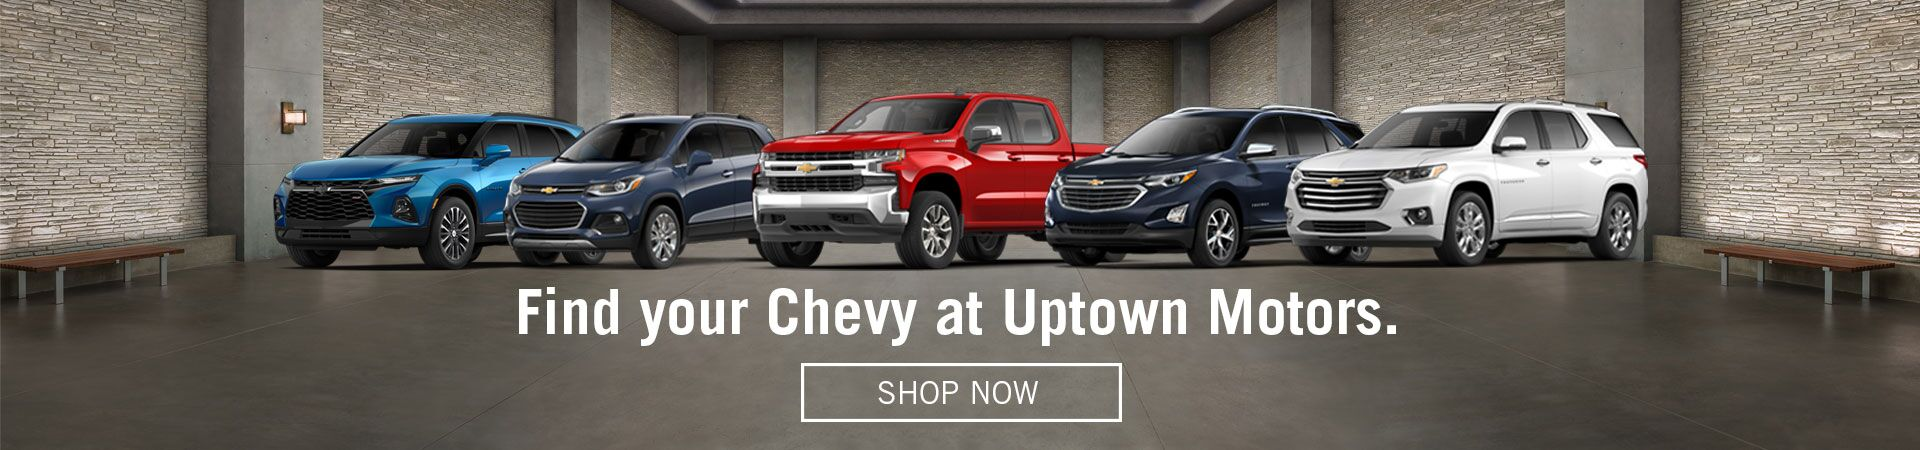 Find Your Chevy Here at Uptown Motors